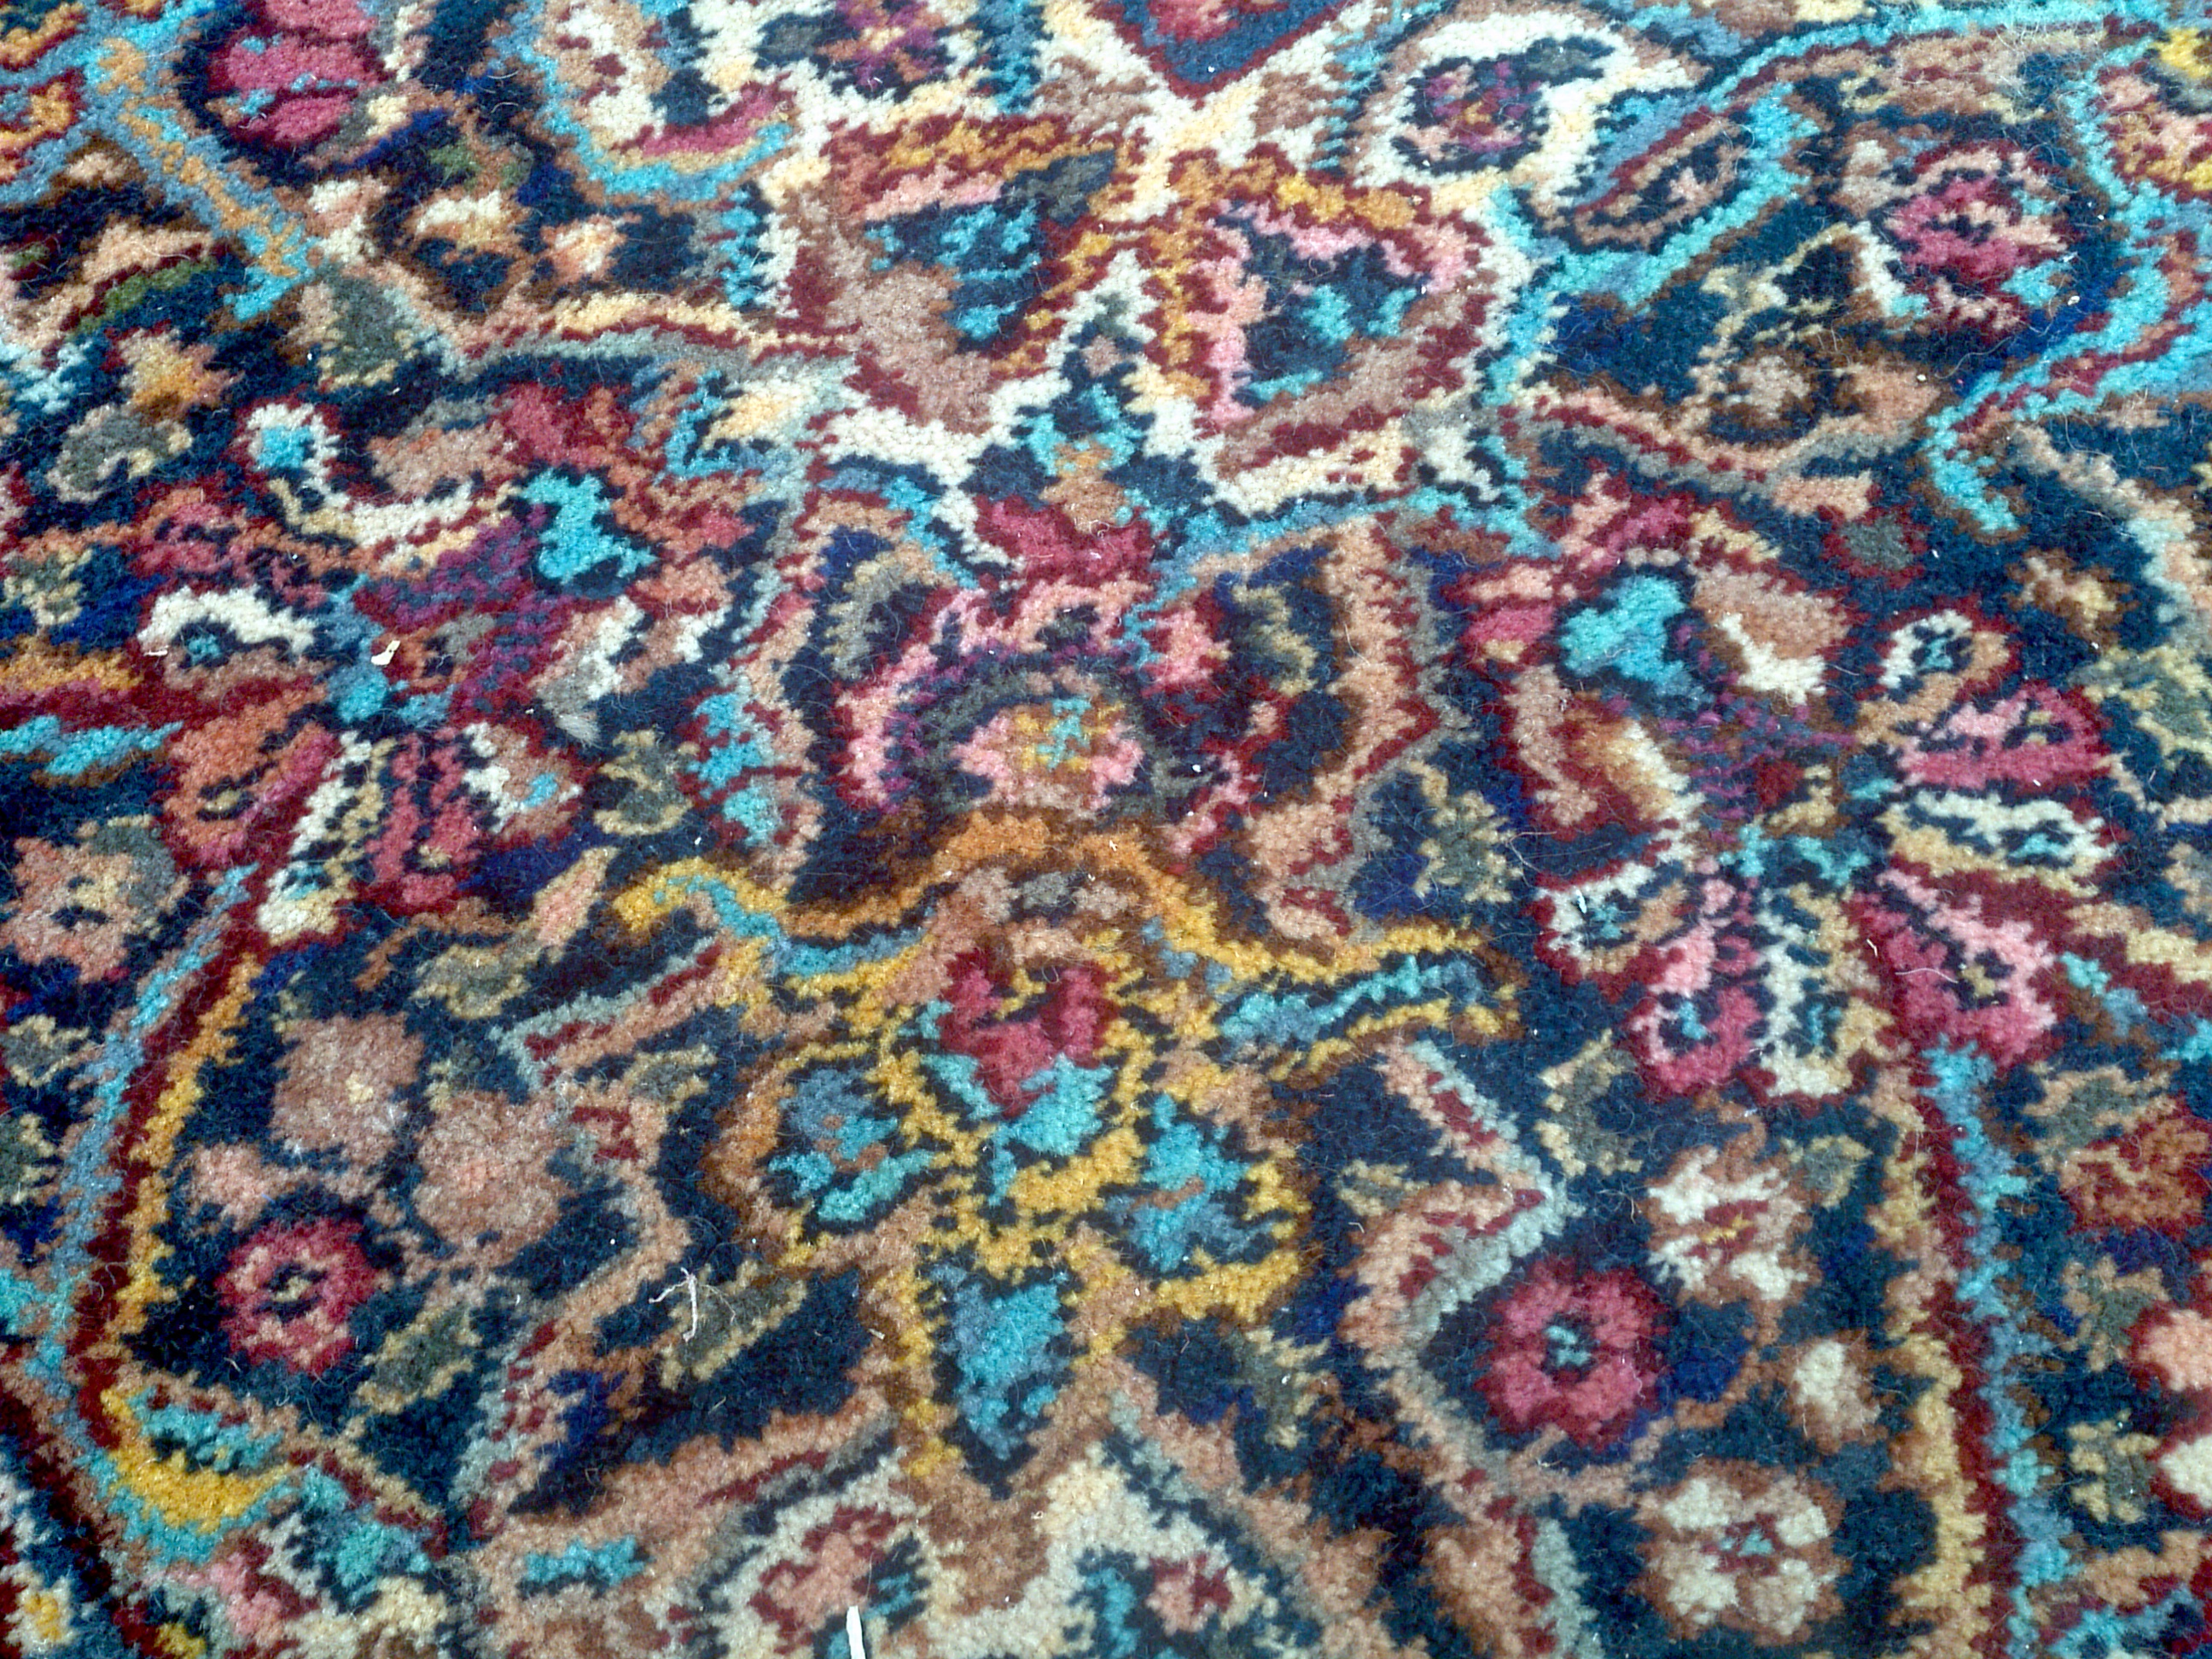 Antique Karastan Rug 81 2 X 15 171 Obnoxious Antiques